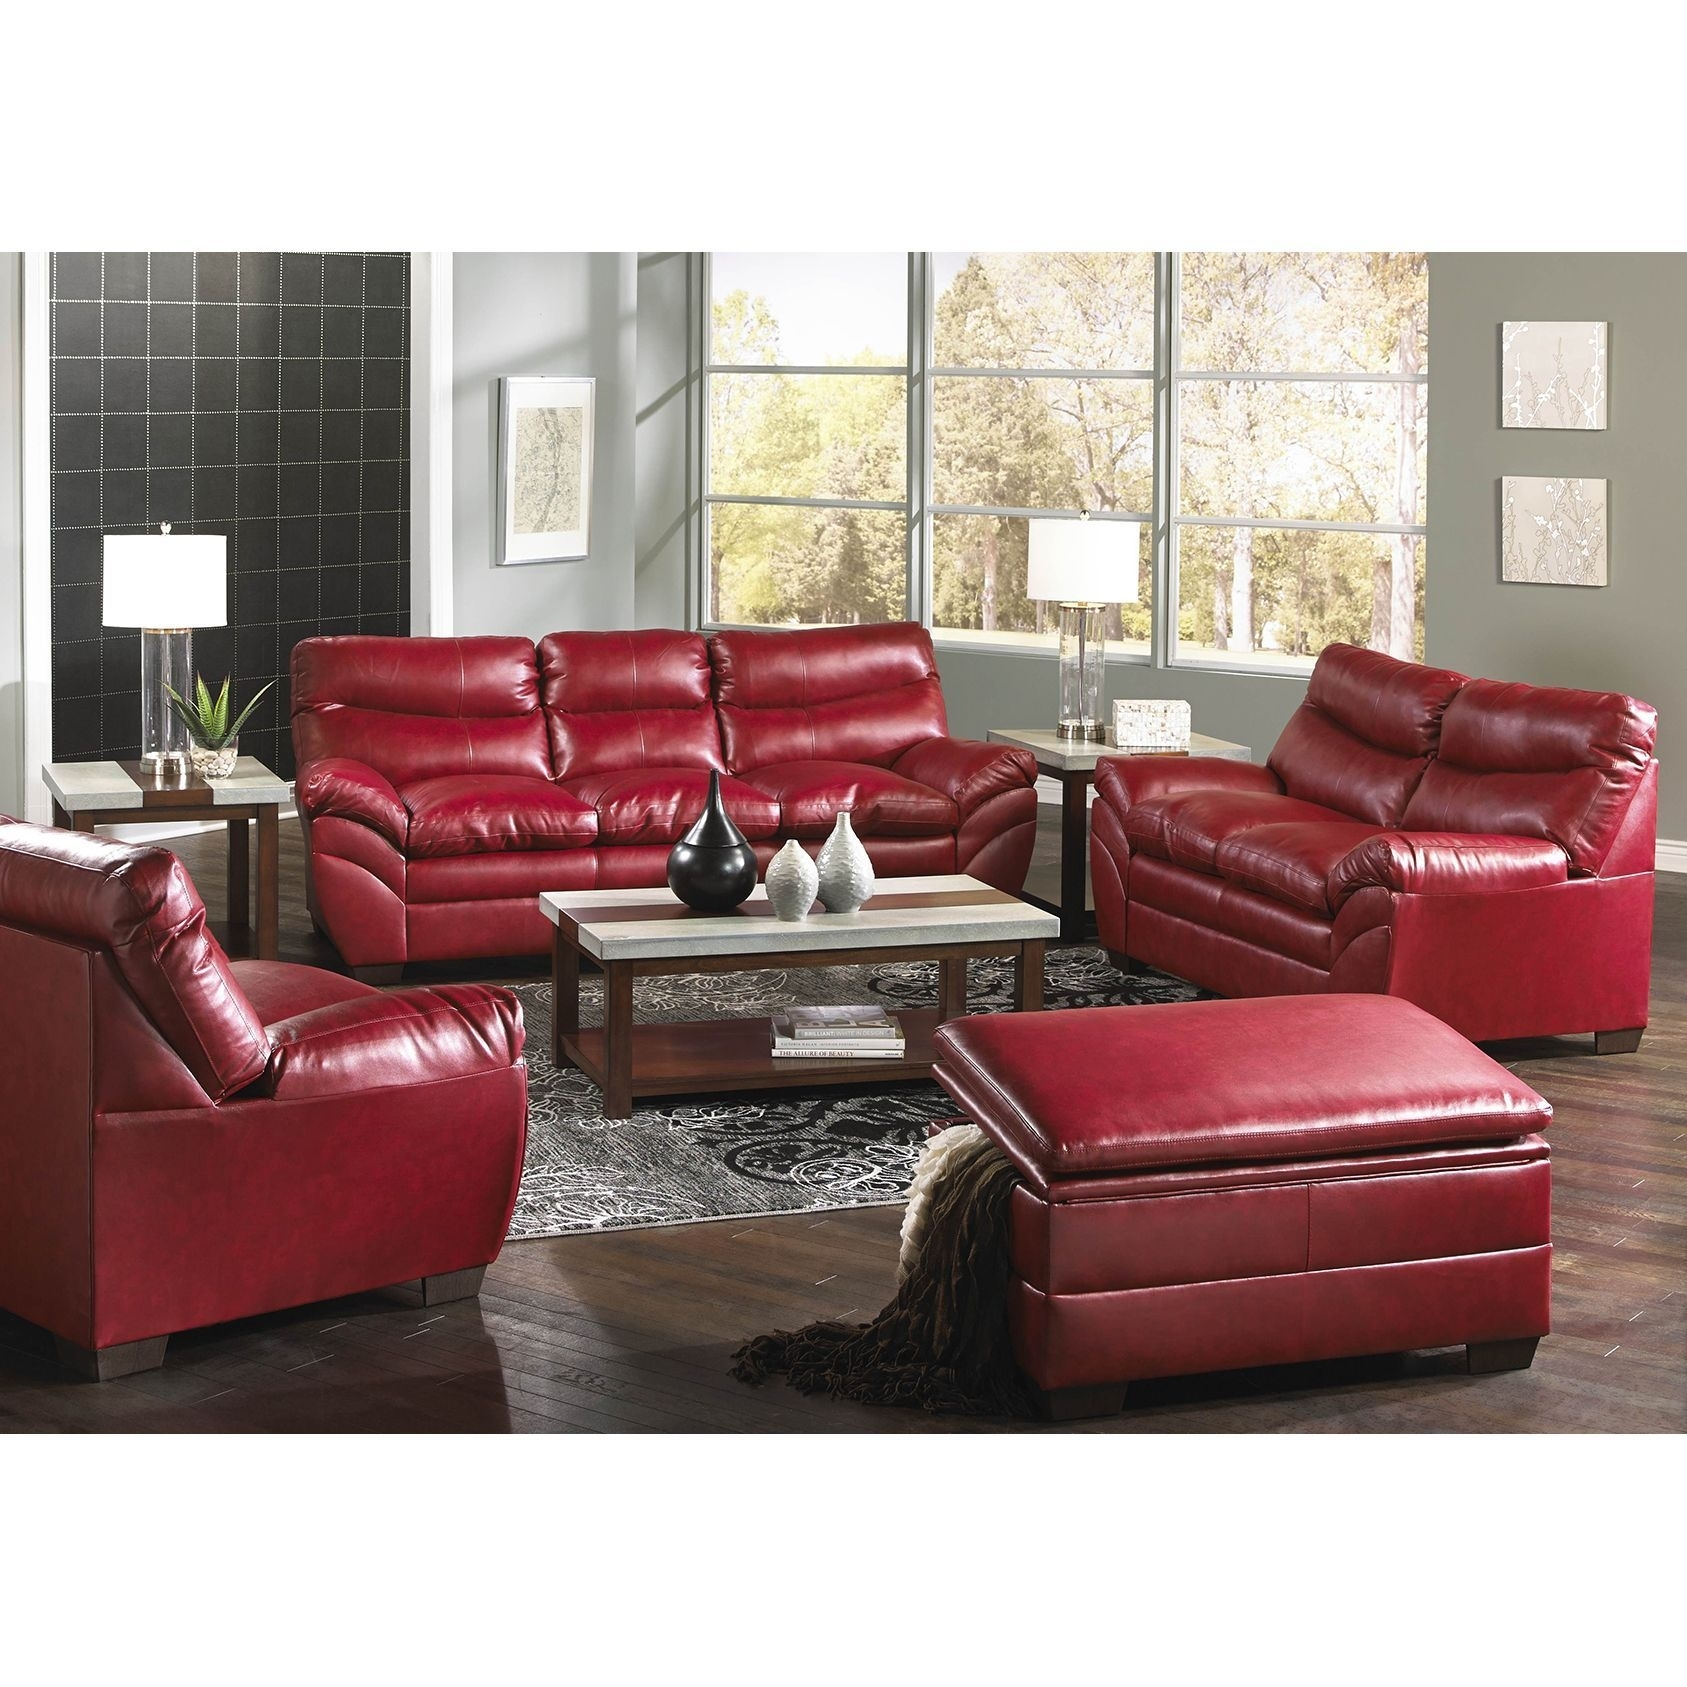 Add Bold Elegance To Your Home With This Gorgeous Love Seat. The with Tenny Cognac 2 Piece Right Facing Chaise Sectionals With 2 Headrest (Image 3 of 30)